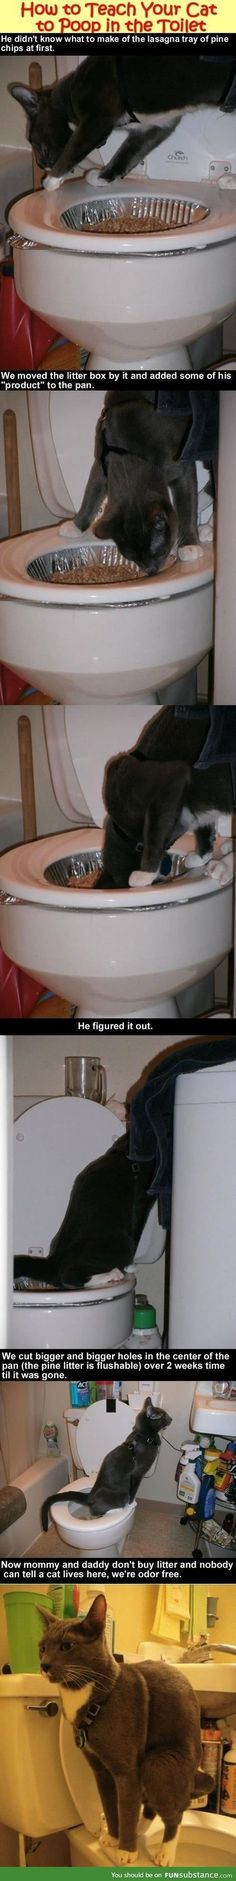 Teach a cat to poop in the toilet. I'm gonna have to try this with Sebastian.